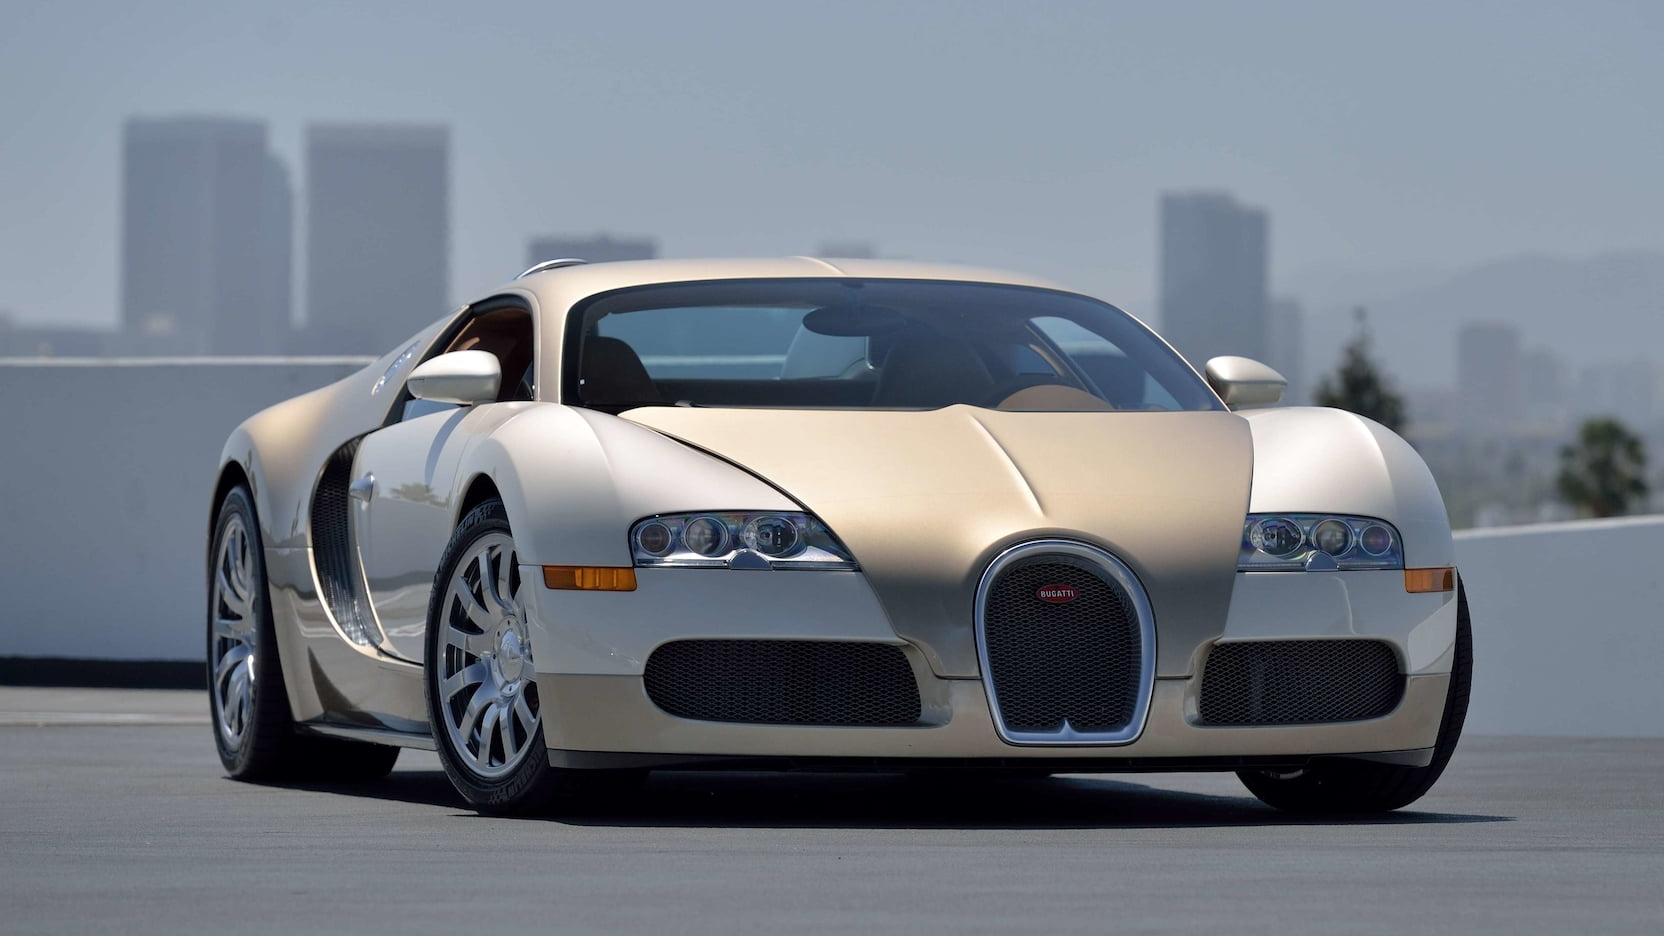 Gold and white Bugatti Veyron on city street with skyscrapers in background